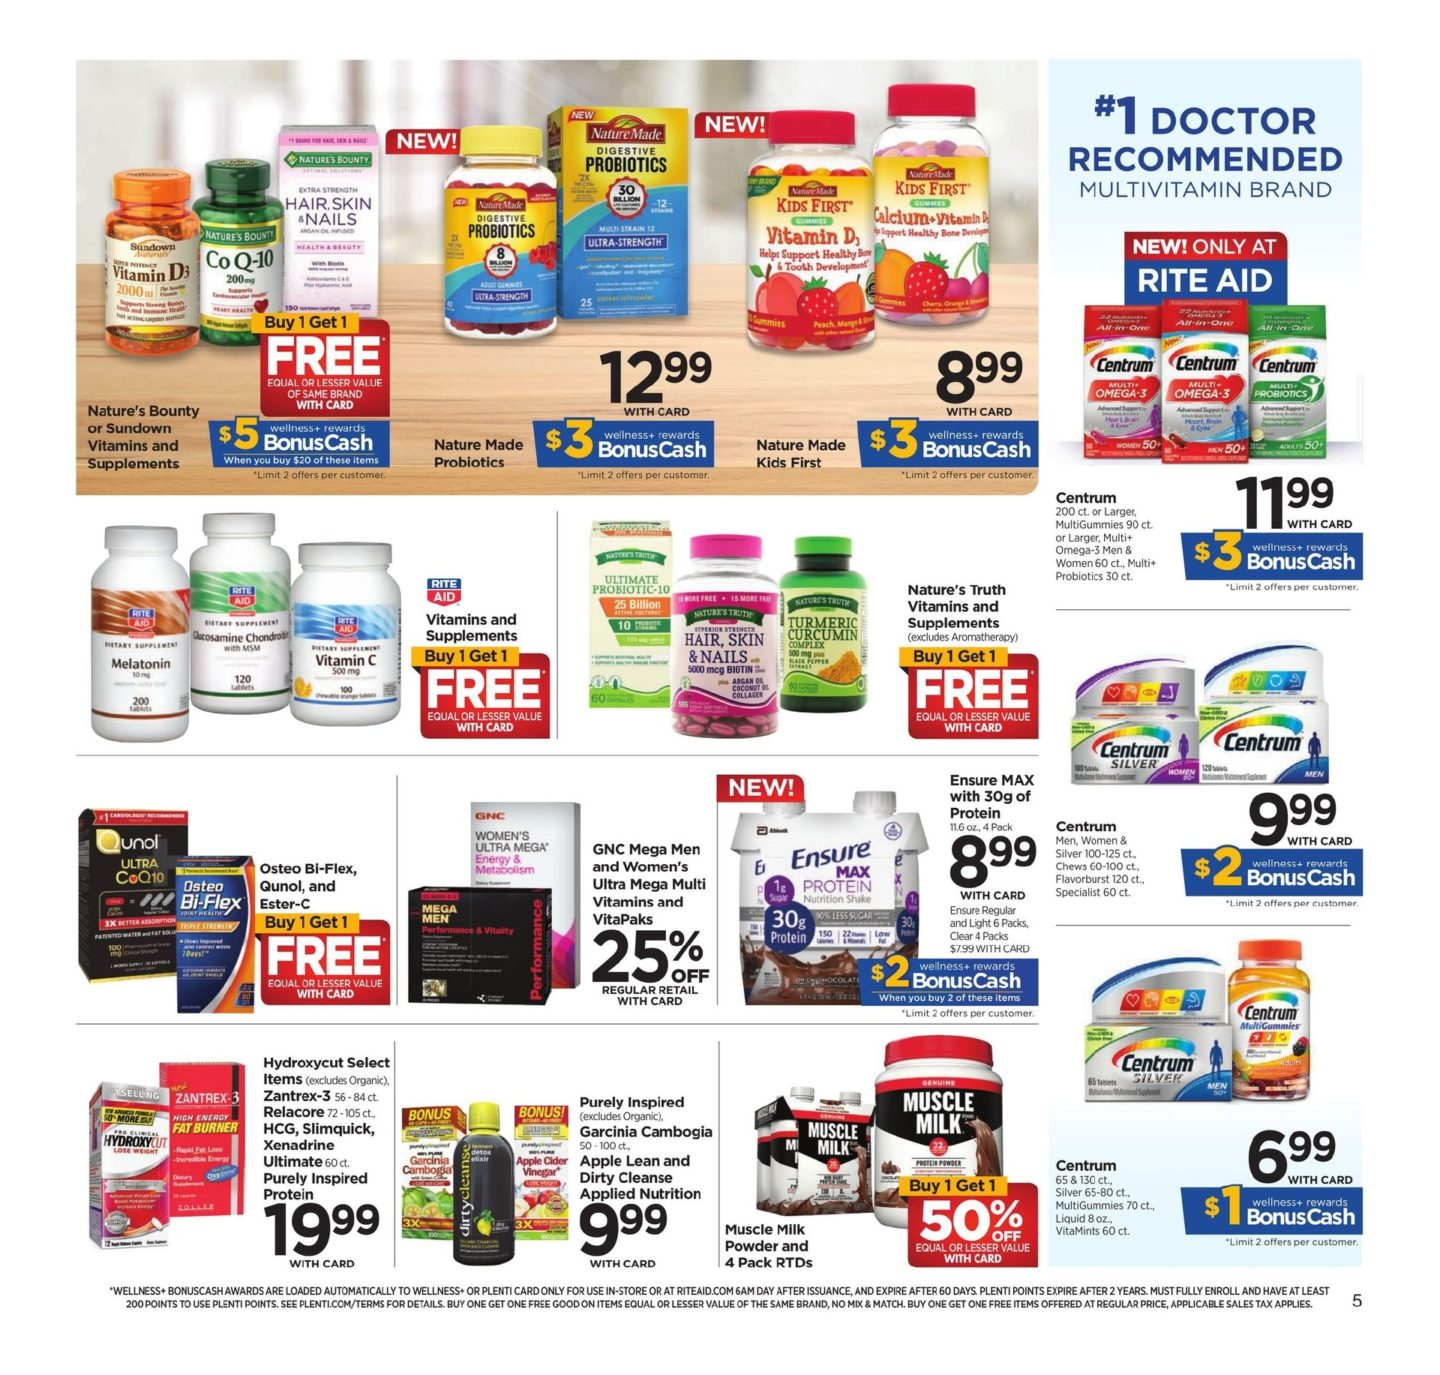 rite aid flyer for this week - Heart.impulsar.co